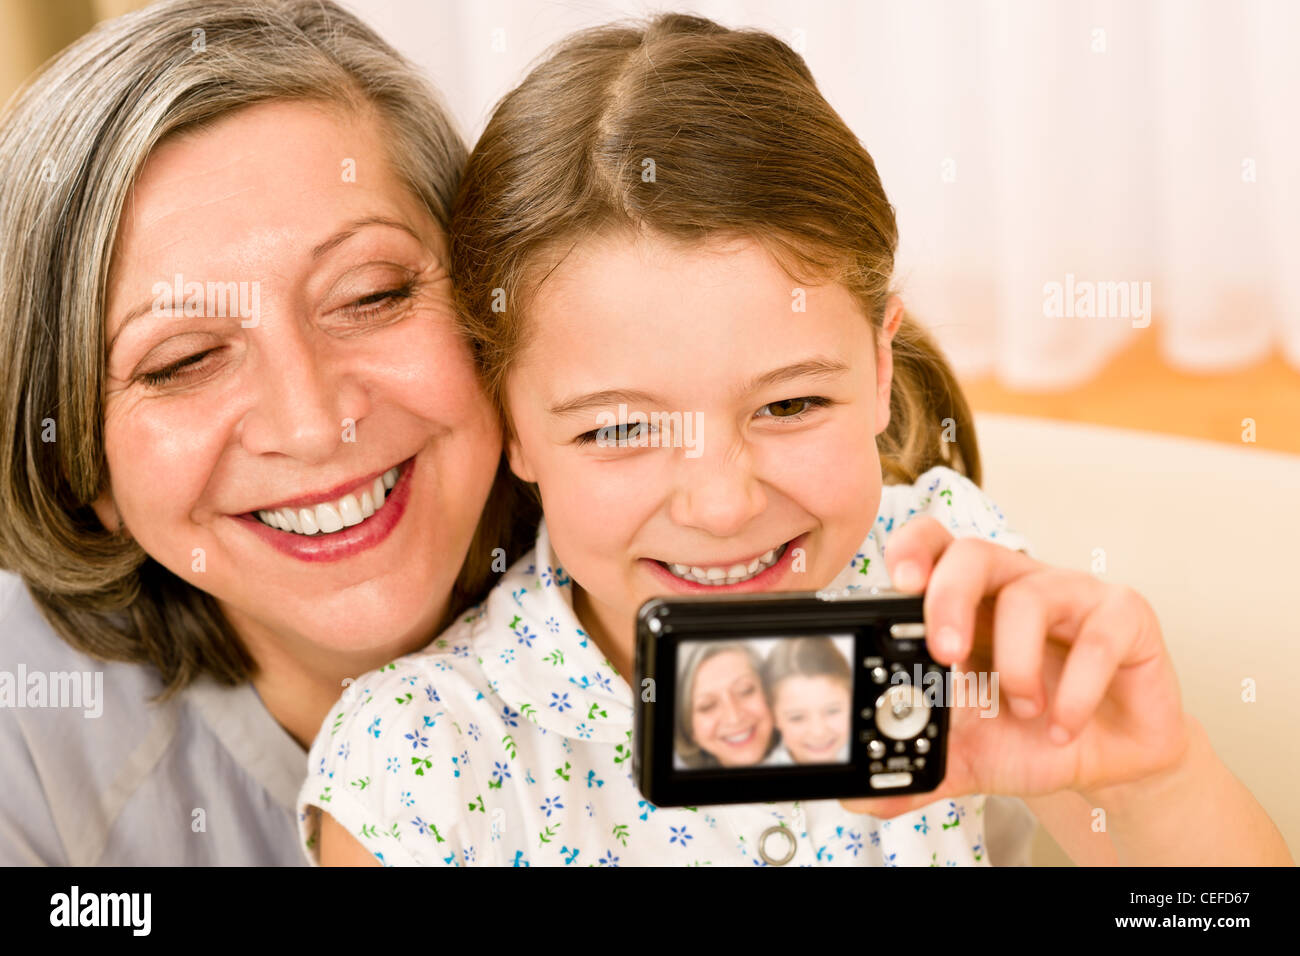 Grandmother and granddaughter take picture themselves smiling close-up portrait - Stock Image